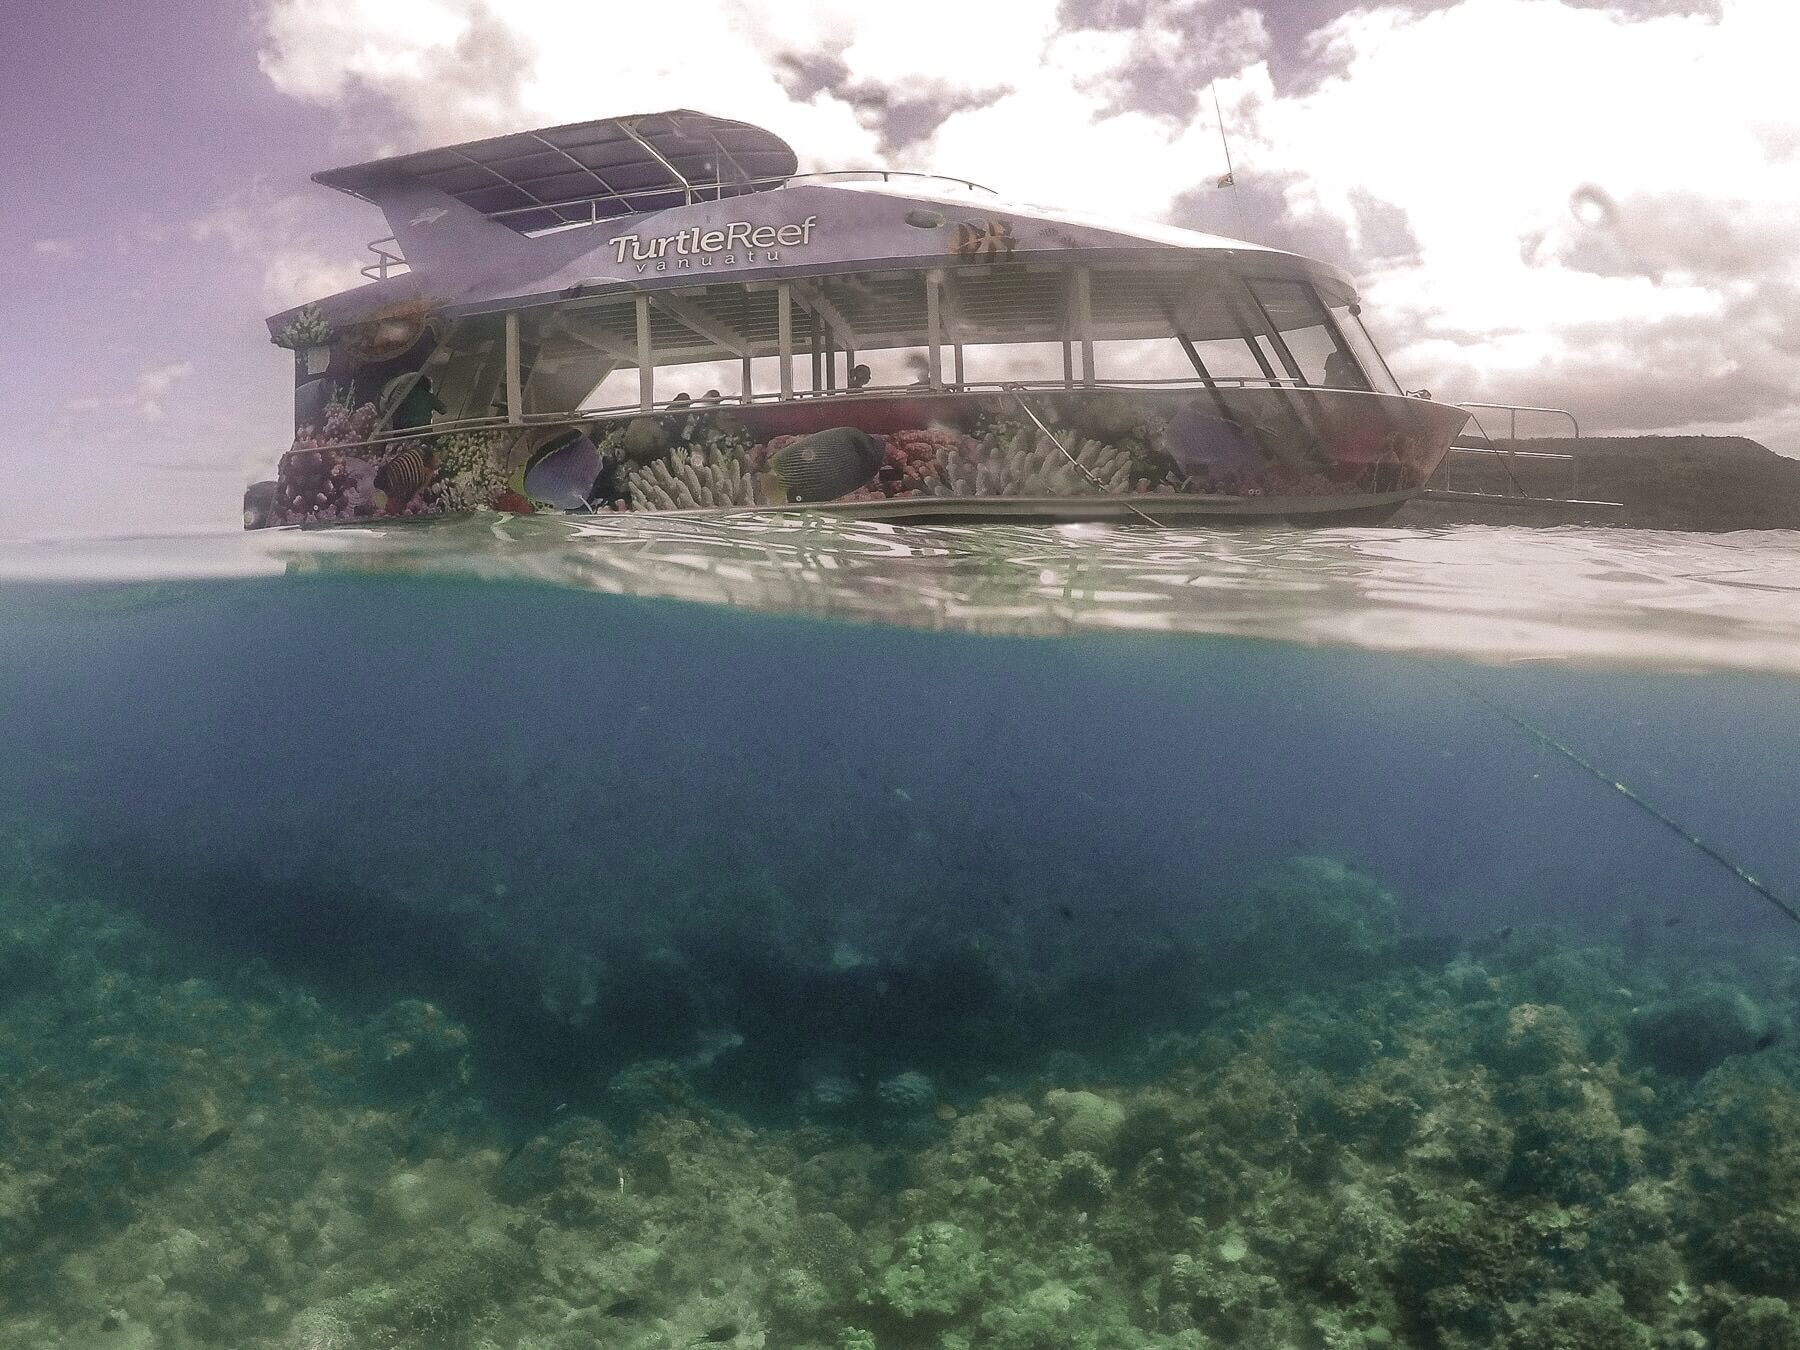 Photo of turtle reef cruise ship with the water underneath